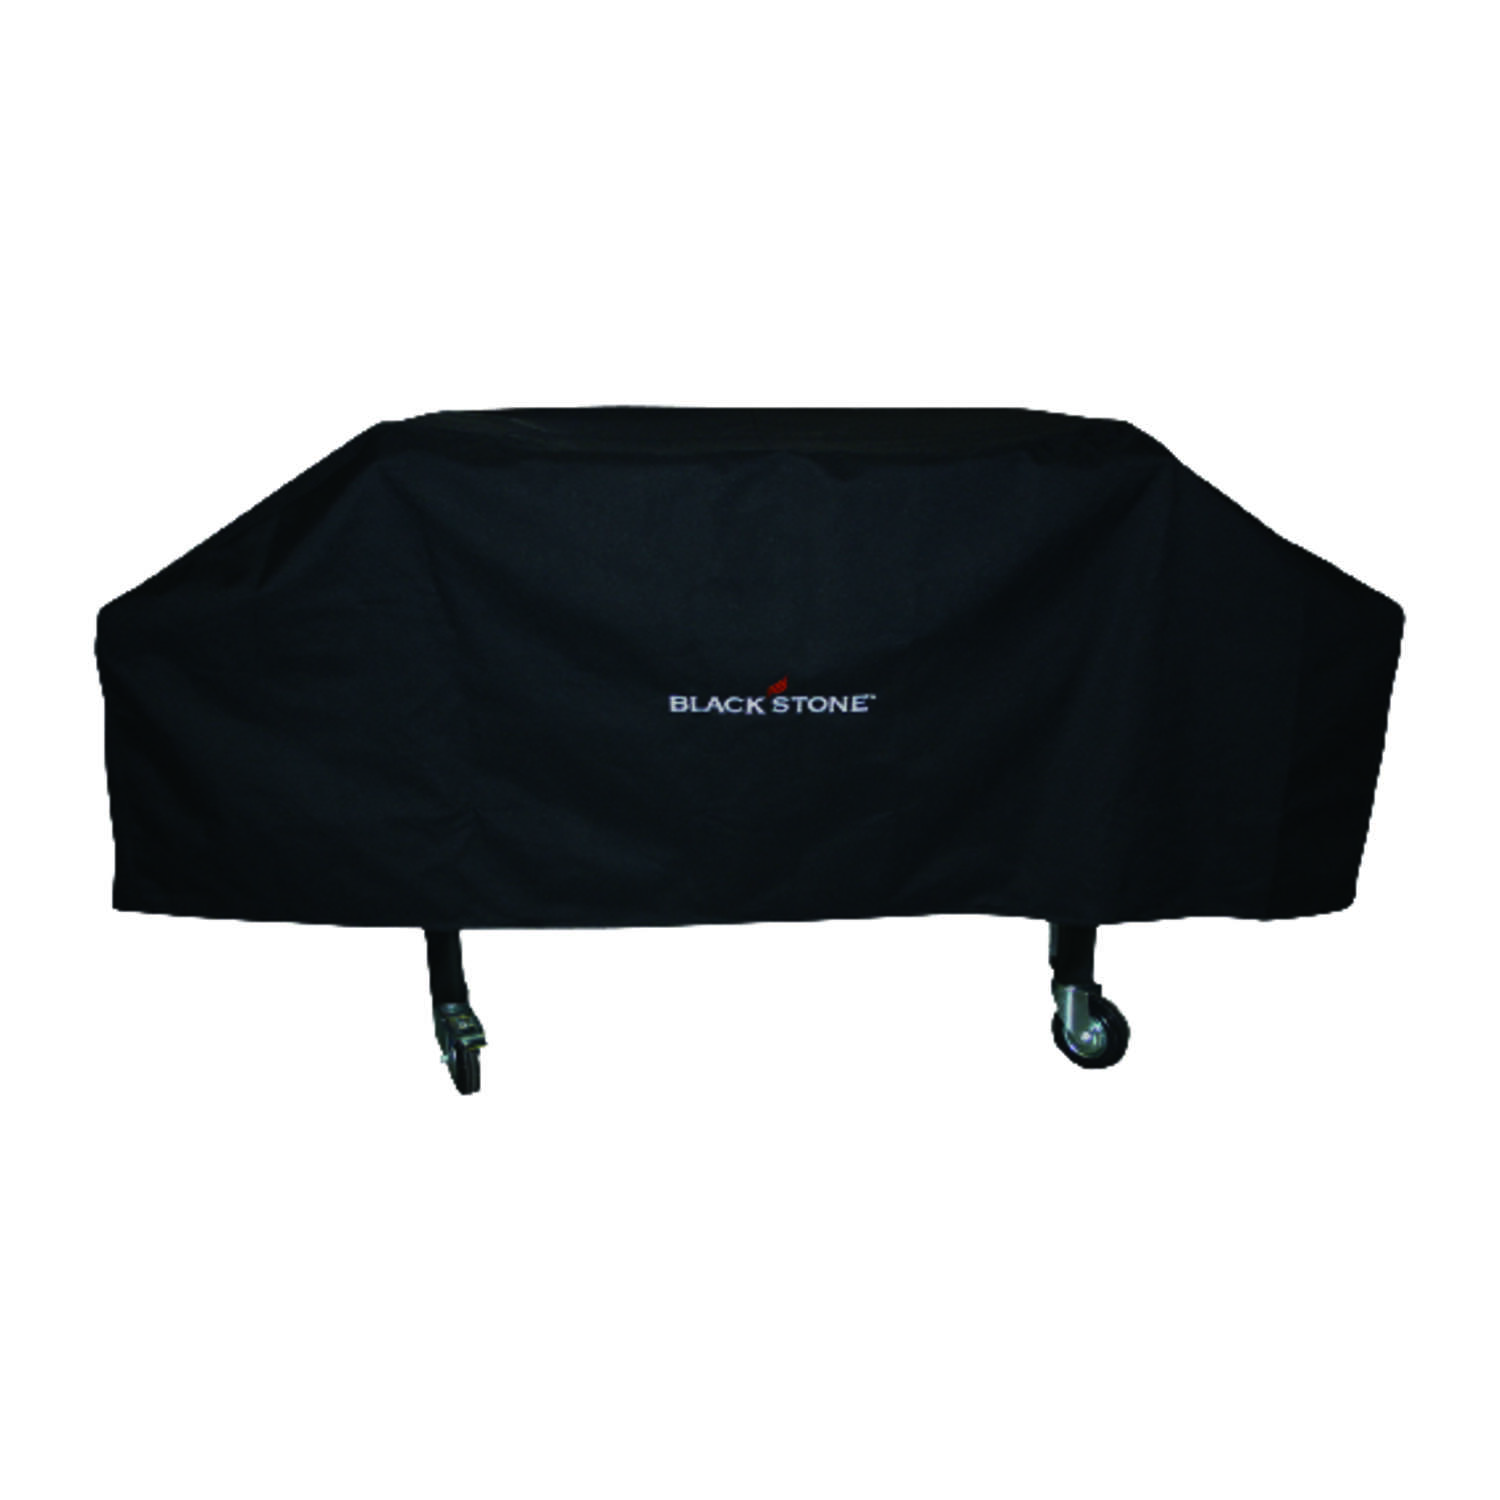 Blackstone Black Griddle Station Cover For Blackstone 36 in. 22.5 in. W x 26 in. H